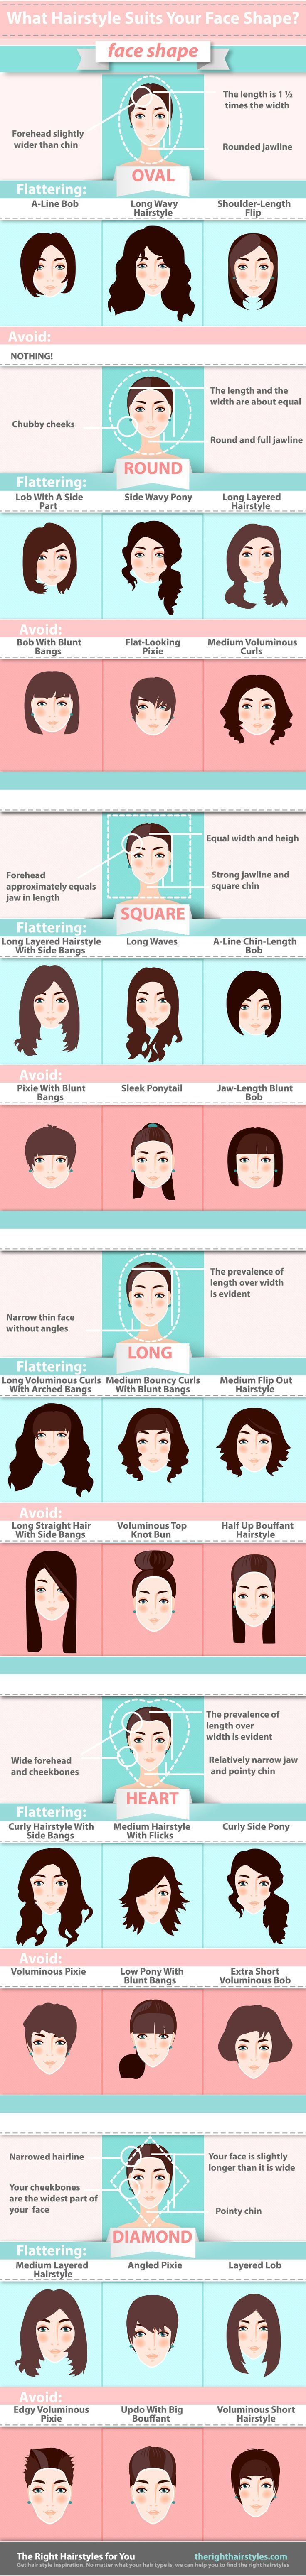 what hairstyle suits you according to your face shape? | hair <3